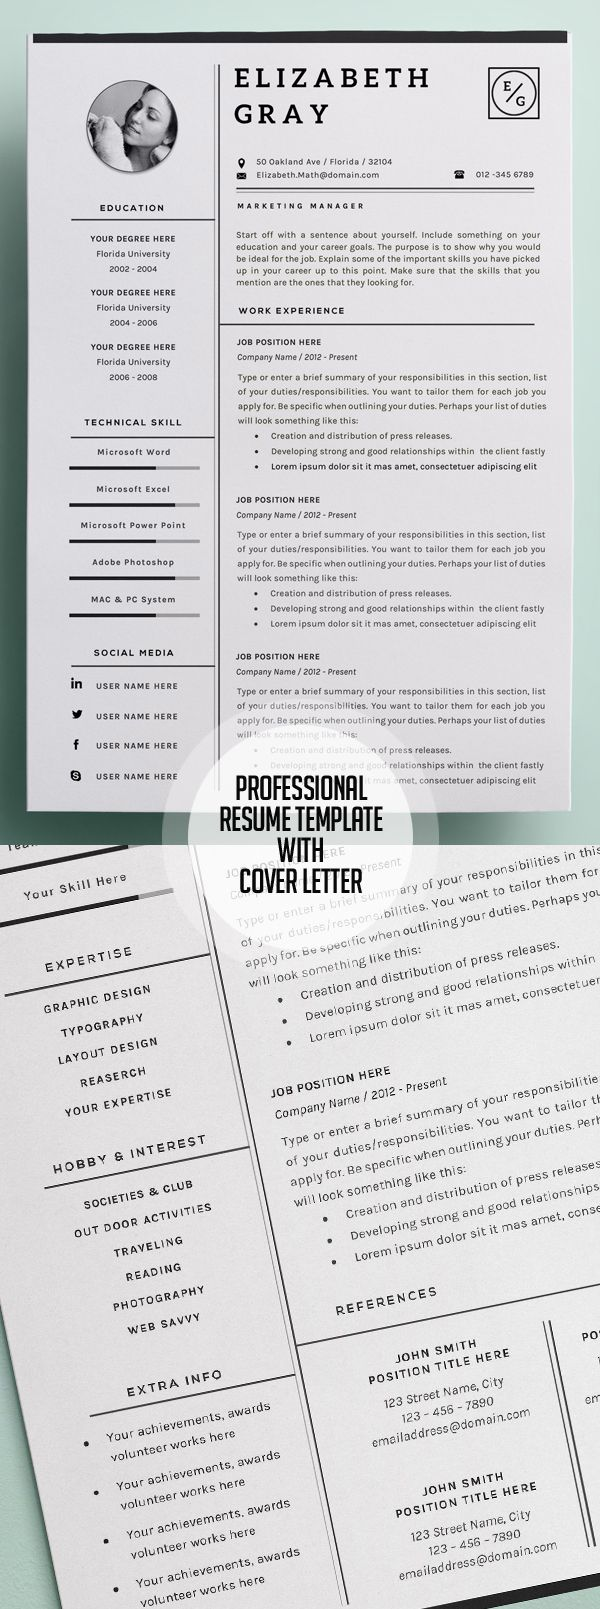 Opposenewapstandardsus  Pretty  Resume Ideas On Pinterest  Resume Resume Templates And  With Fascinating Professional And Modern Resume Template With Page Cover Cvtemplate With Astounding Dishwasher Resume Sample Also Quality Assurance Resume Sample In Addition Customer Service Retail Resume And Sample Healthcare Resume As Well As Performance Resume Template Additionally What Not To Include In A Resume From Pinterestcom With Opposenewapstandardsus  Fascinating  Resume Ideas On Pinterest  Resume Resume Templates And  With Astounding Professional And Modern Resume Template With Page Cover Cvtemplate And Pretty Dishwasher Resume Sample Also Quality Assurance Resume Sample In Addition Customer Service Retail Resume From Pinterestcom